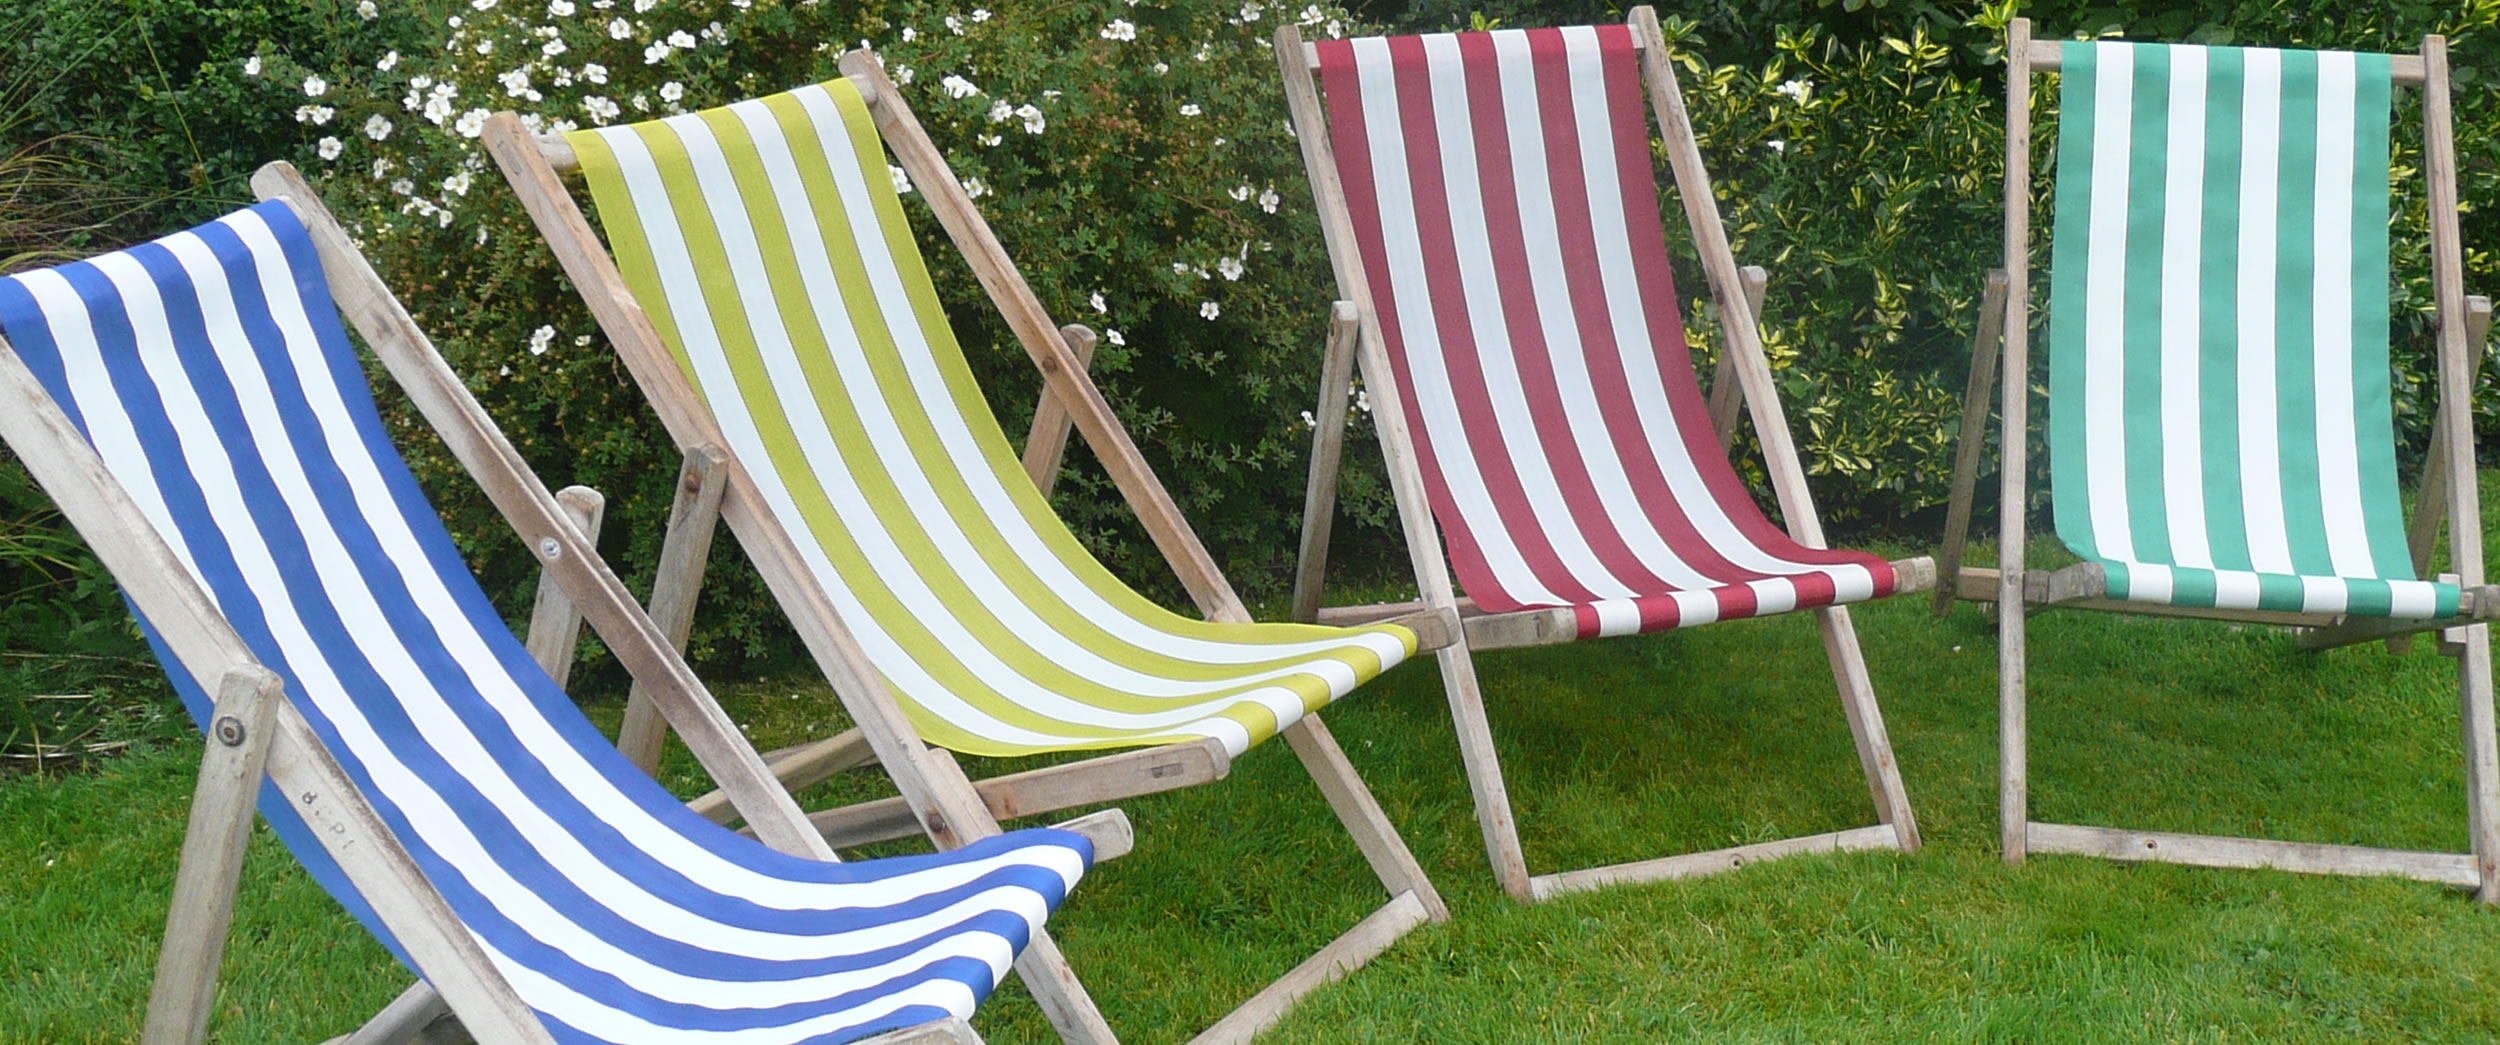 Deckchair Hire – The Stripes Company UK